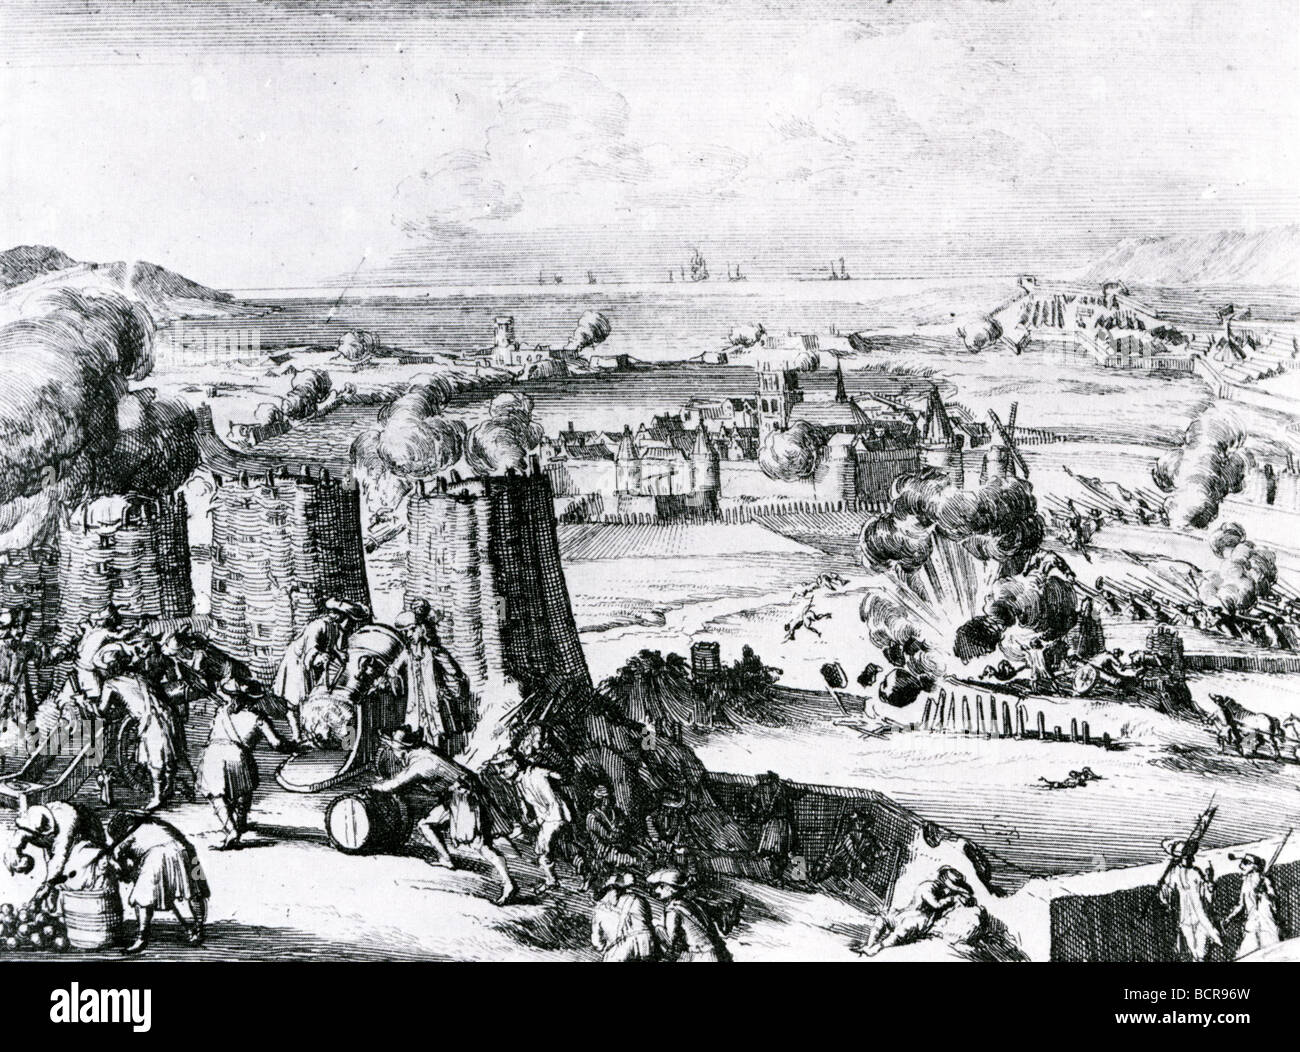 IRELAND - THE SIEGE OF DERRY IN 1689 - Stock Image